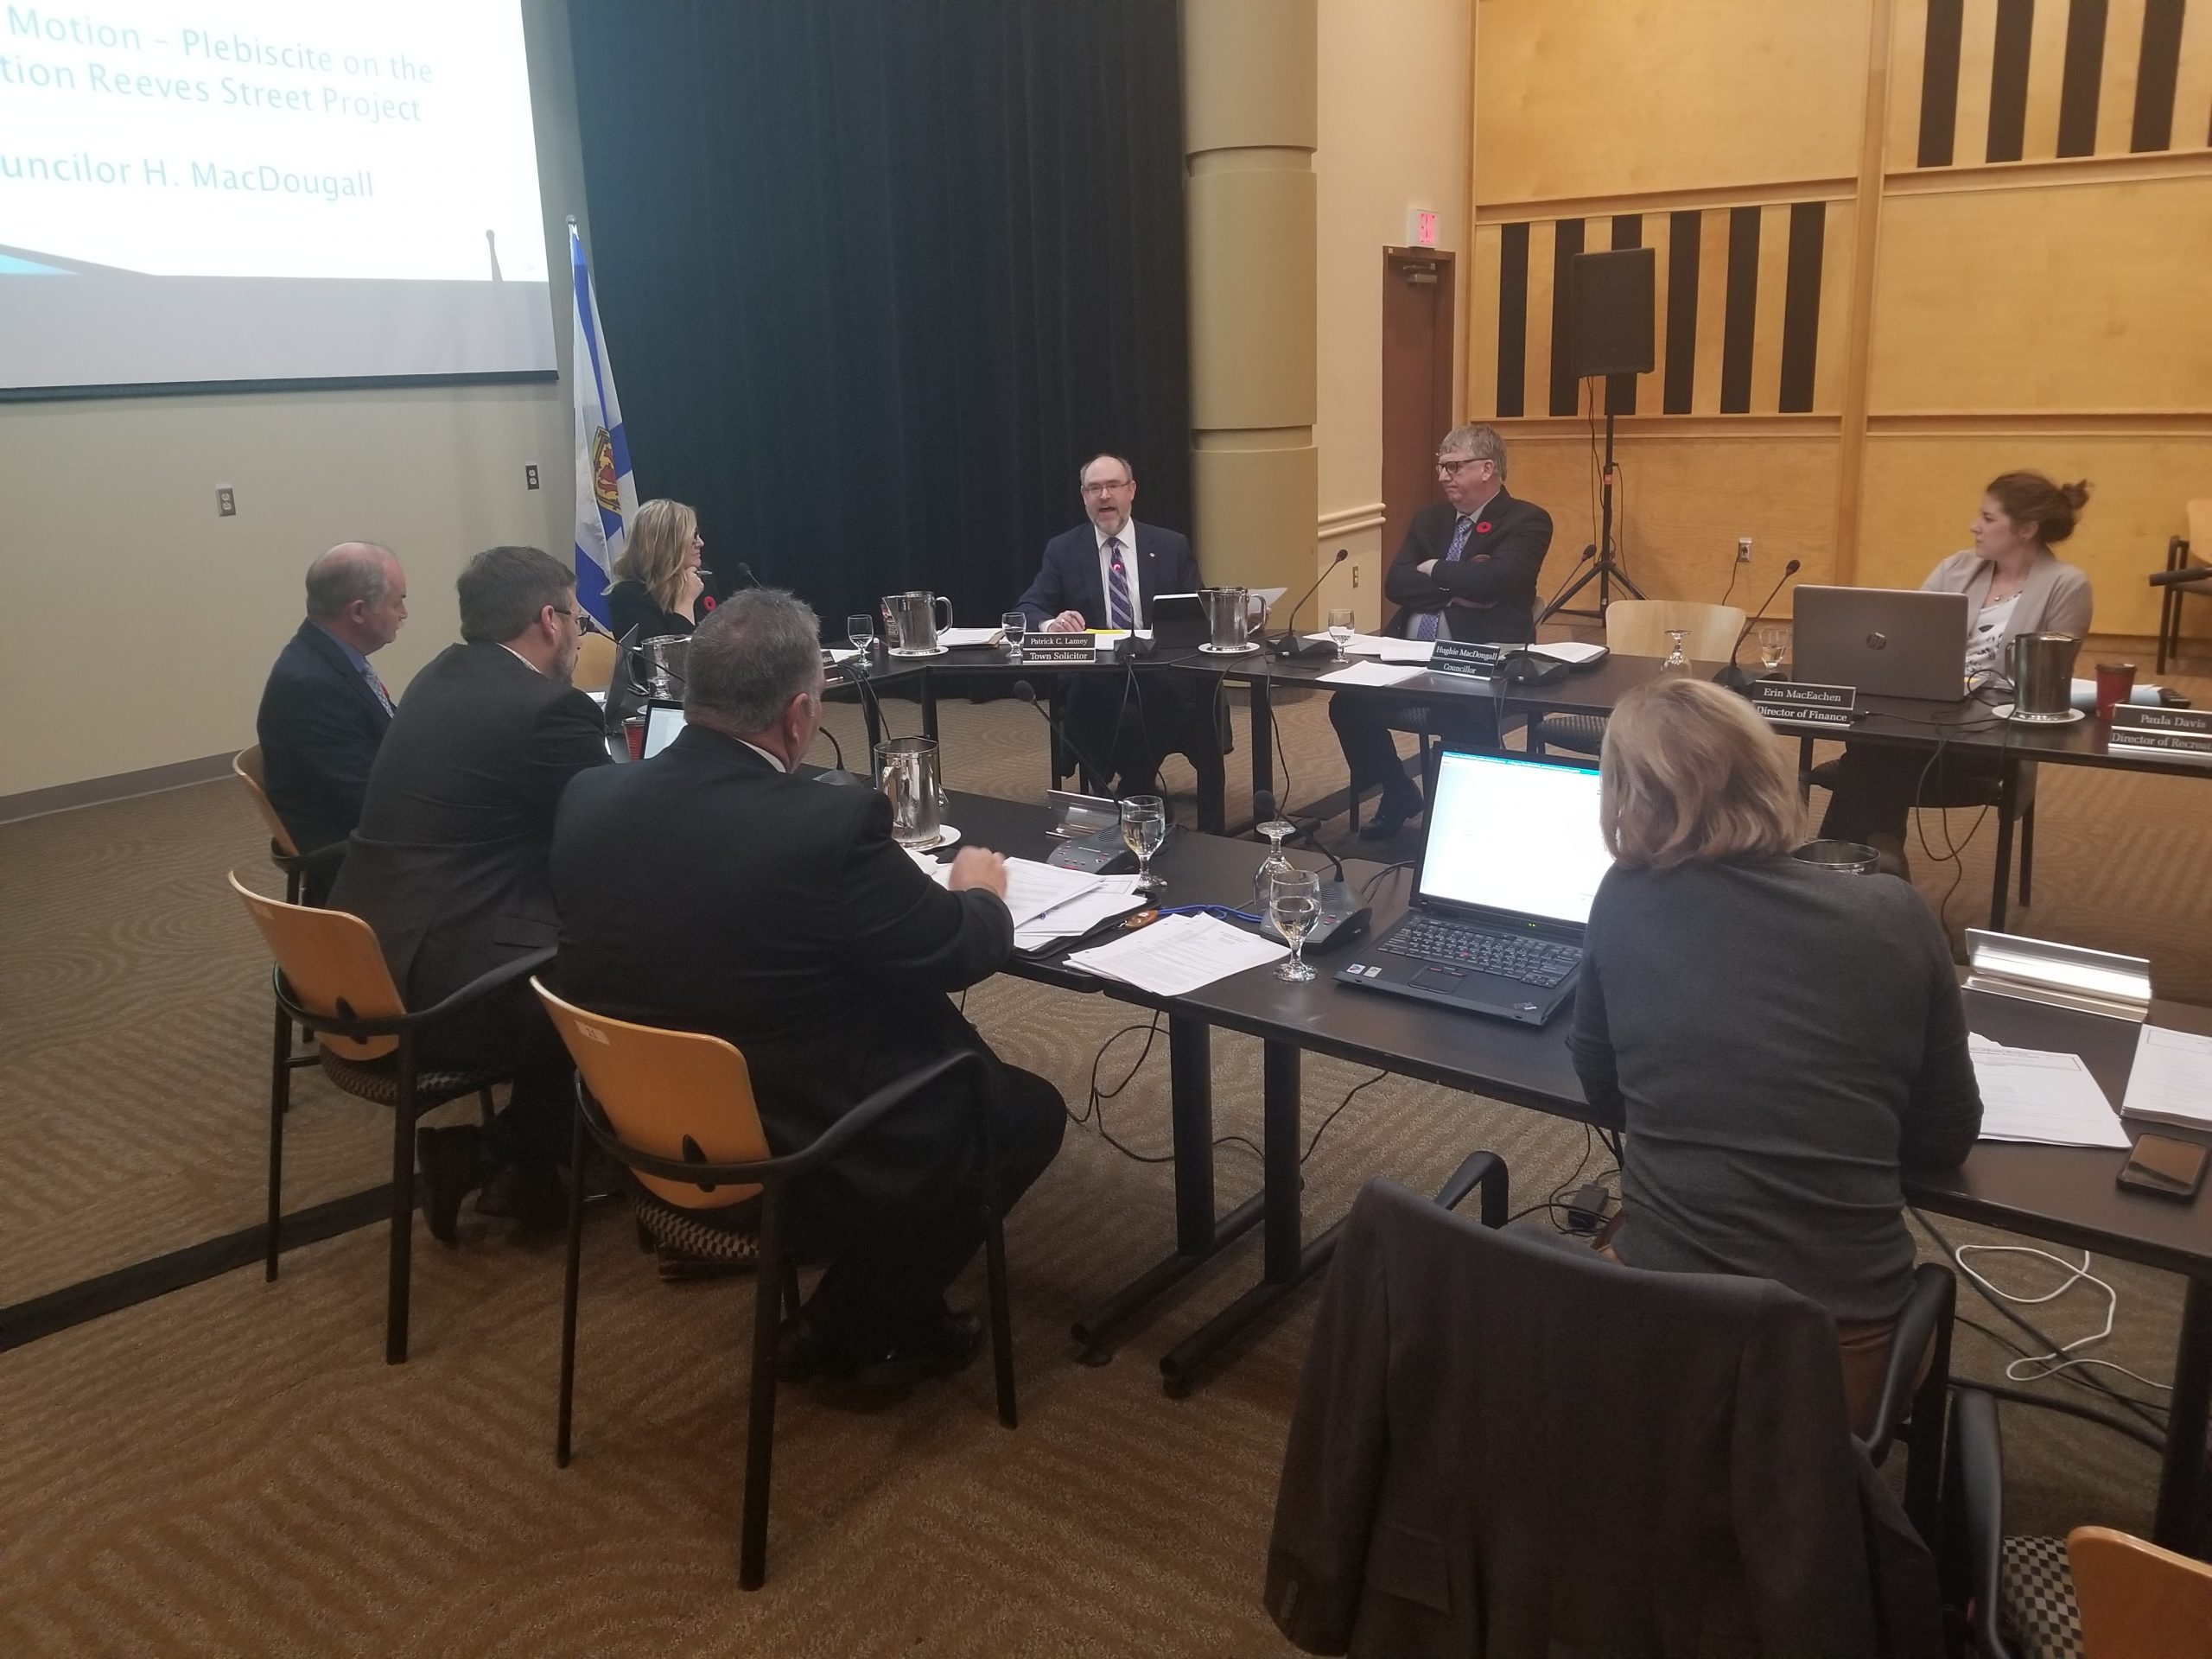 Councillors defeat motion to hold plebiscite on Reeves St. lane reduction